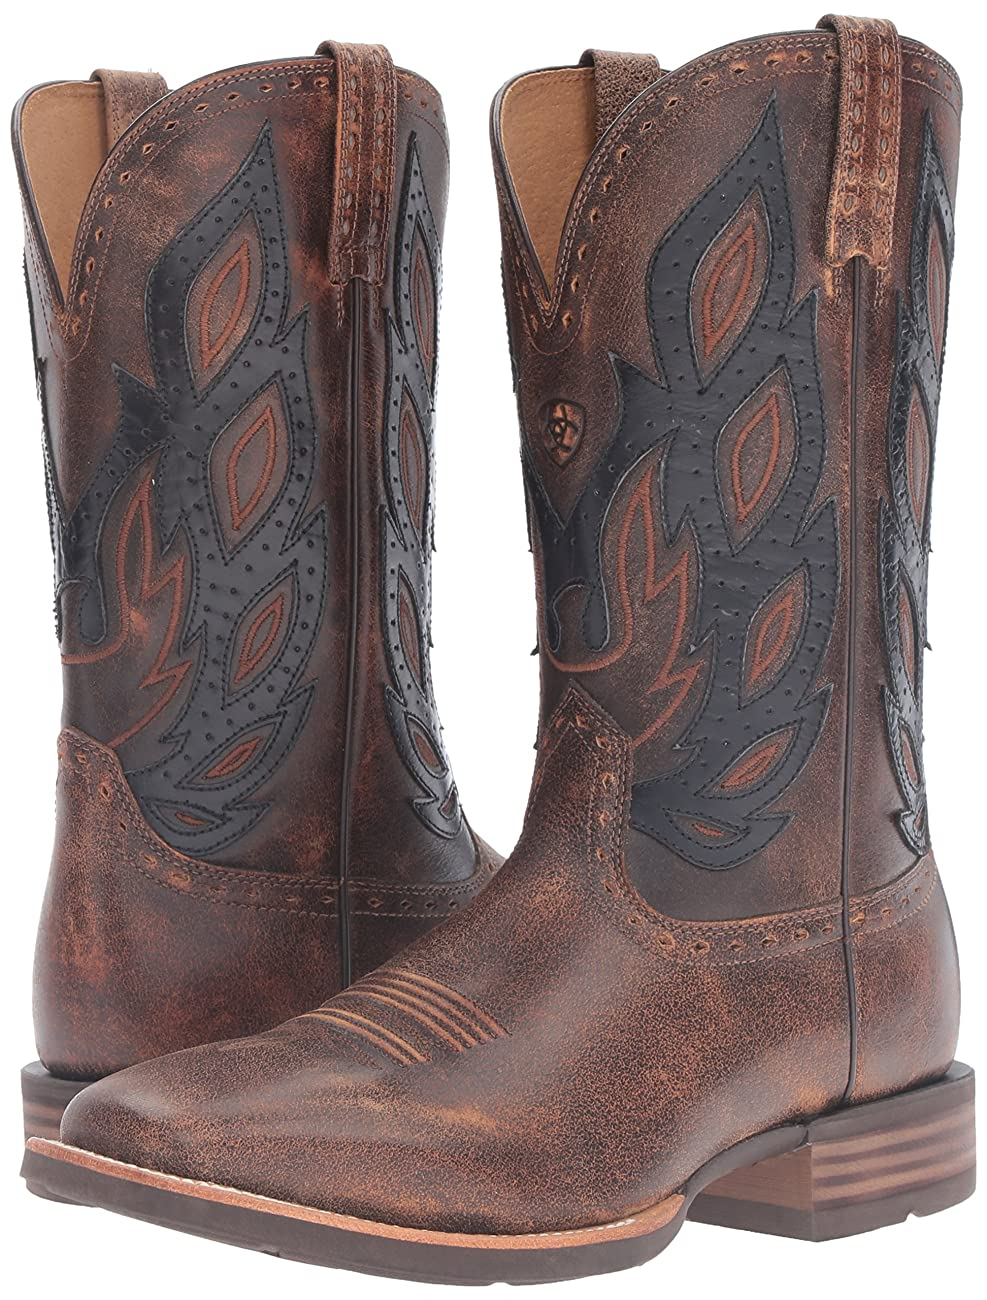 Ariat Men's Nighthawk Western Cowboy Boot 6